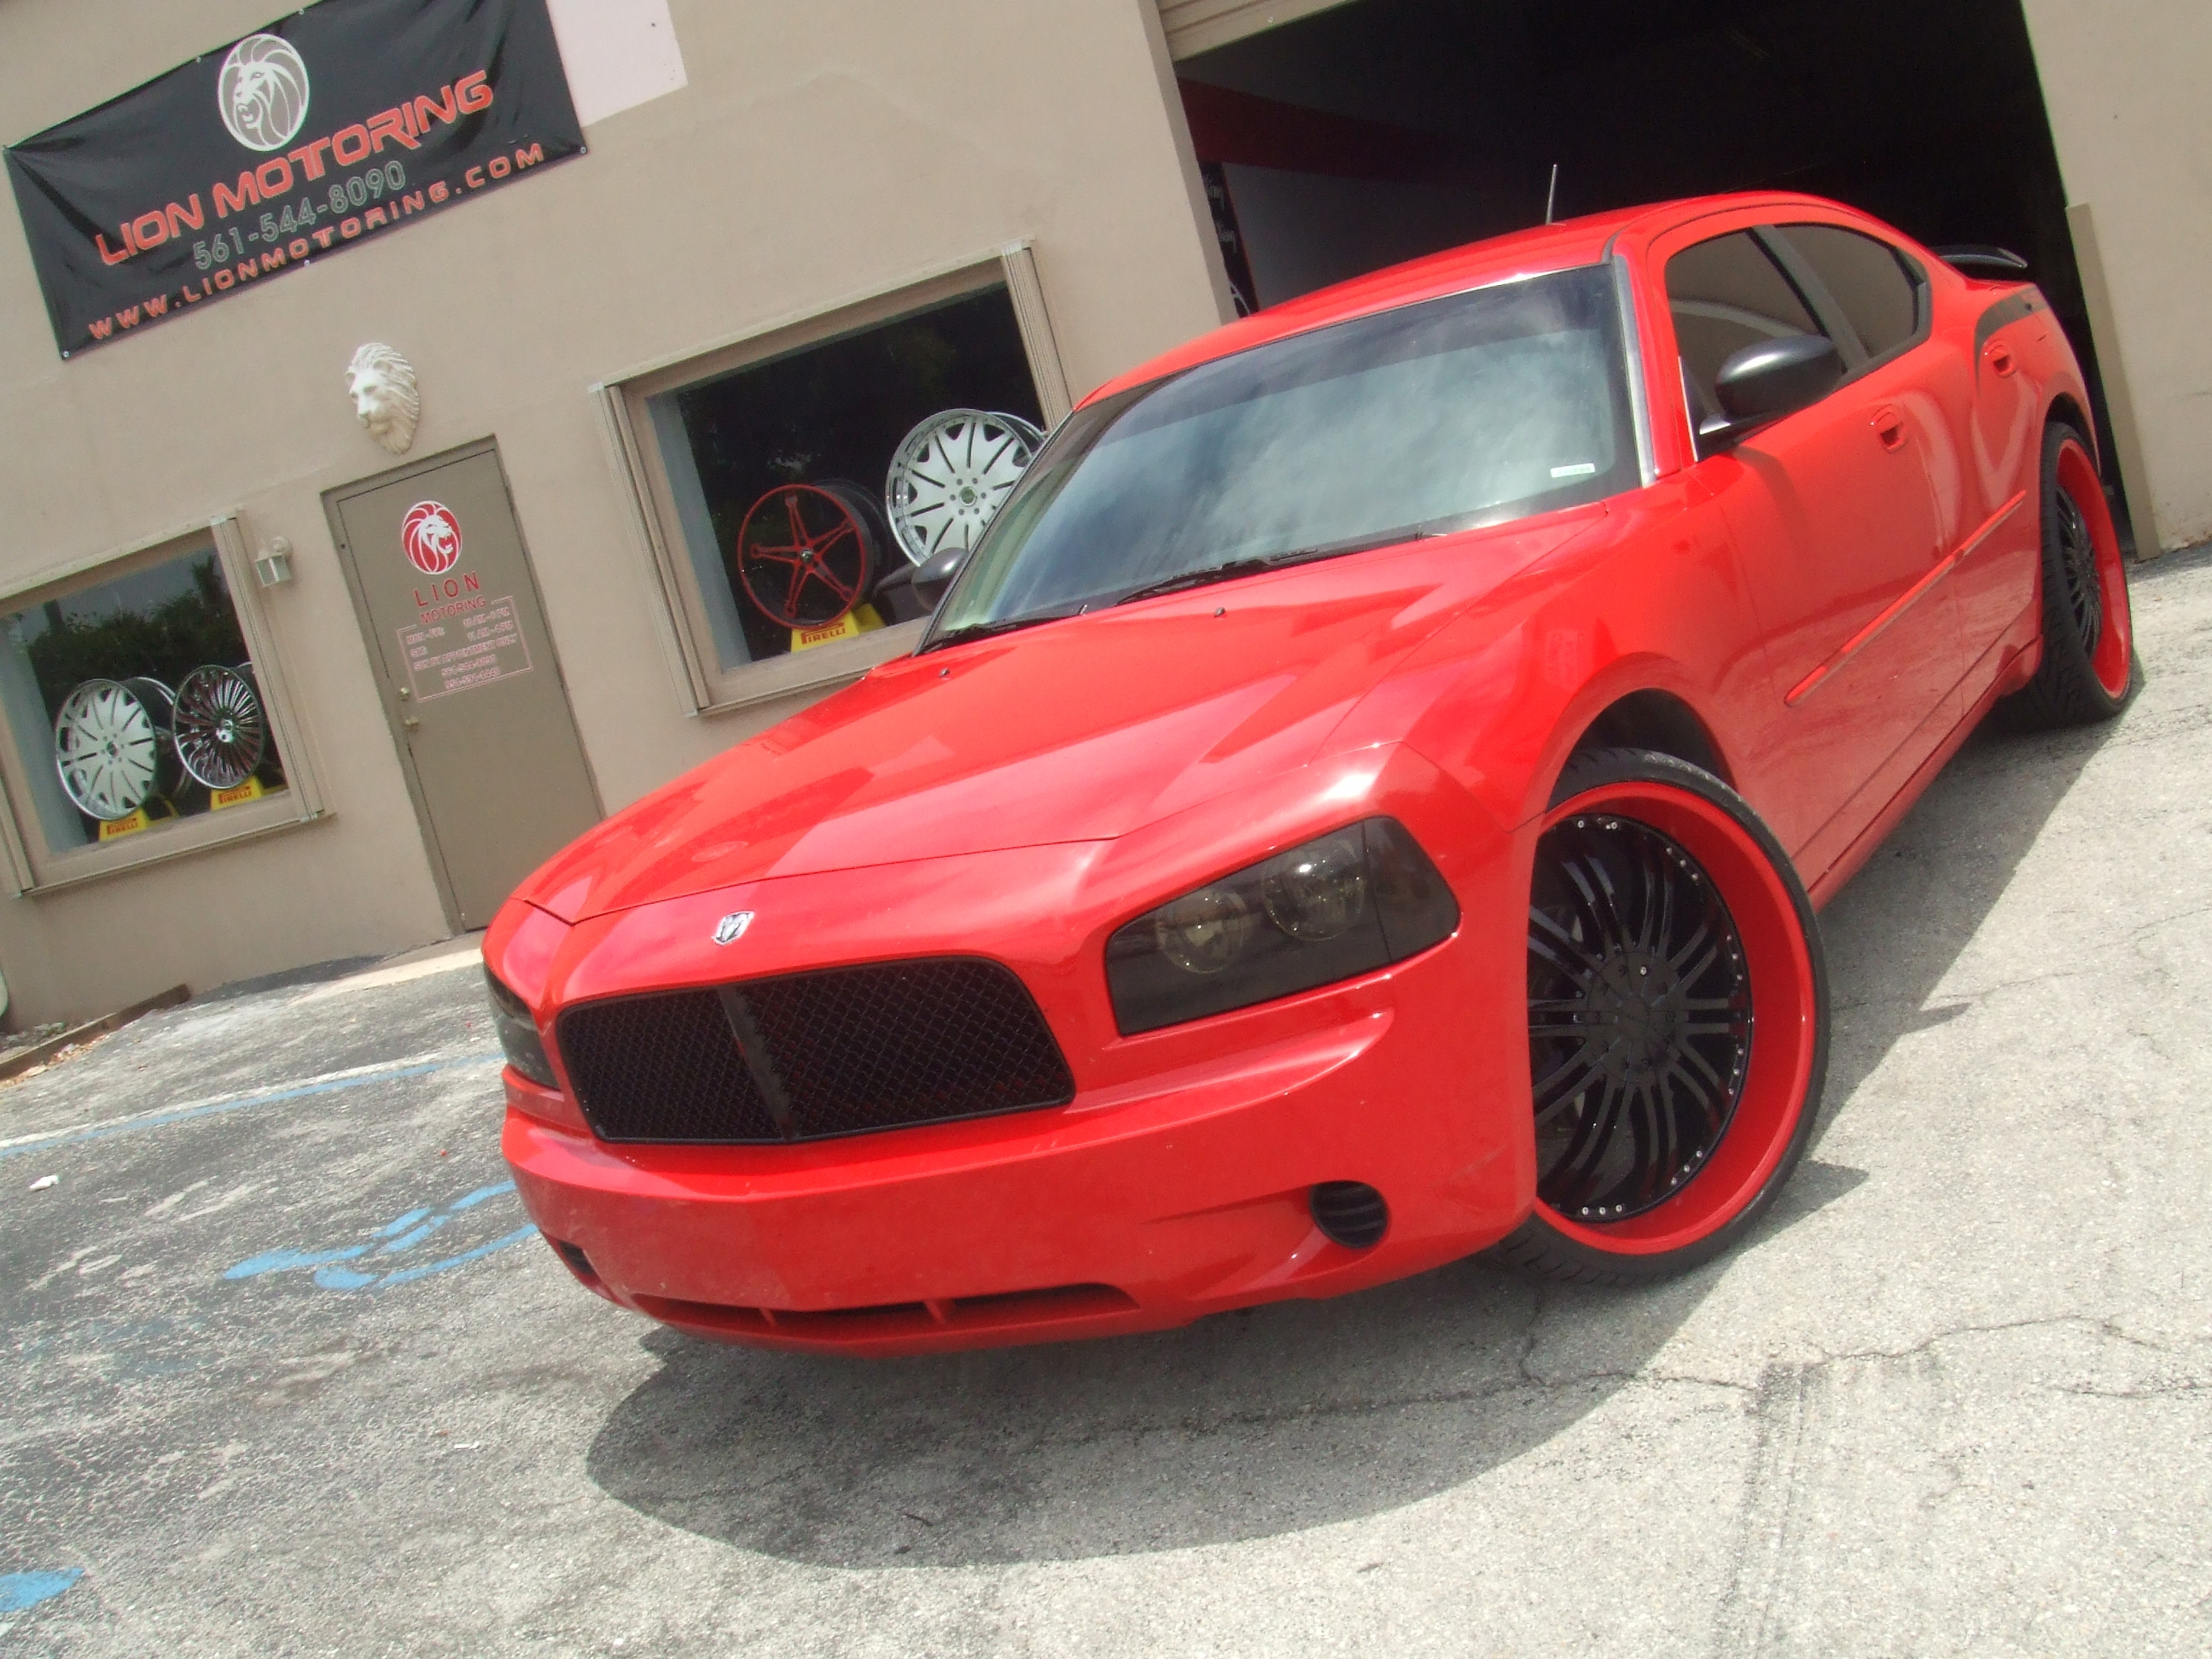 LION_MOTORING 2010 Dodge Charger 14776700